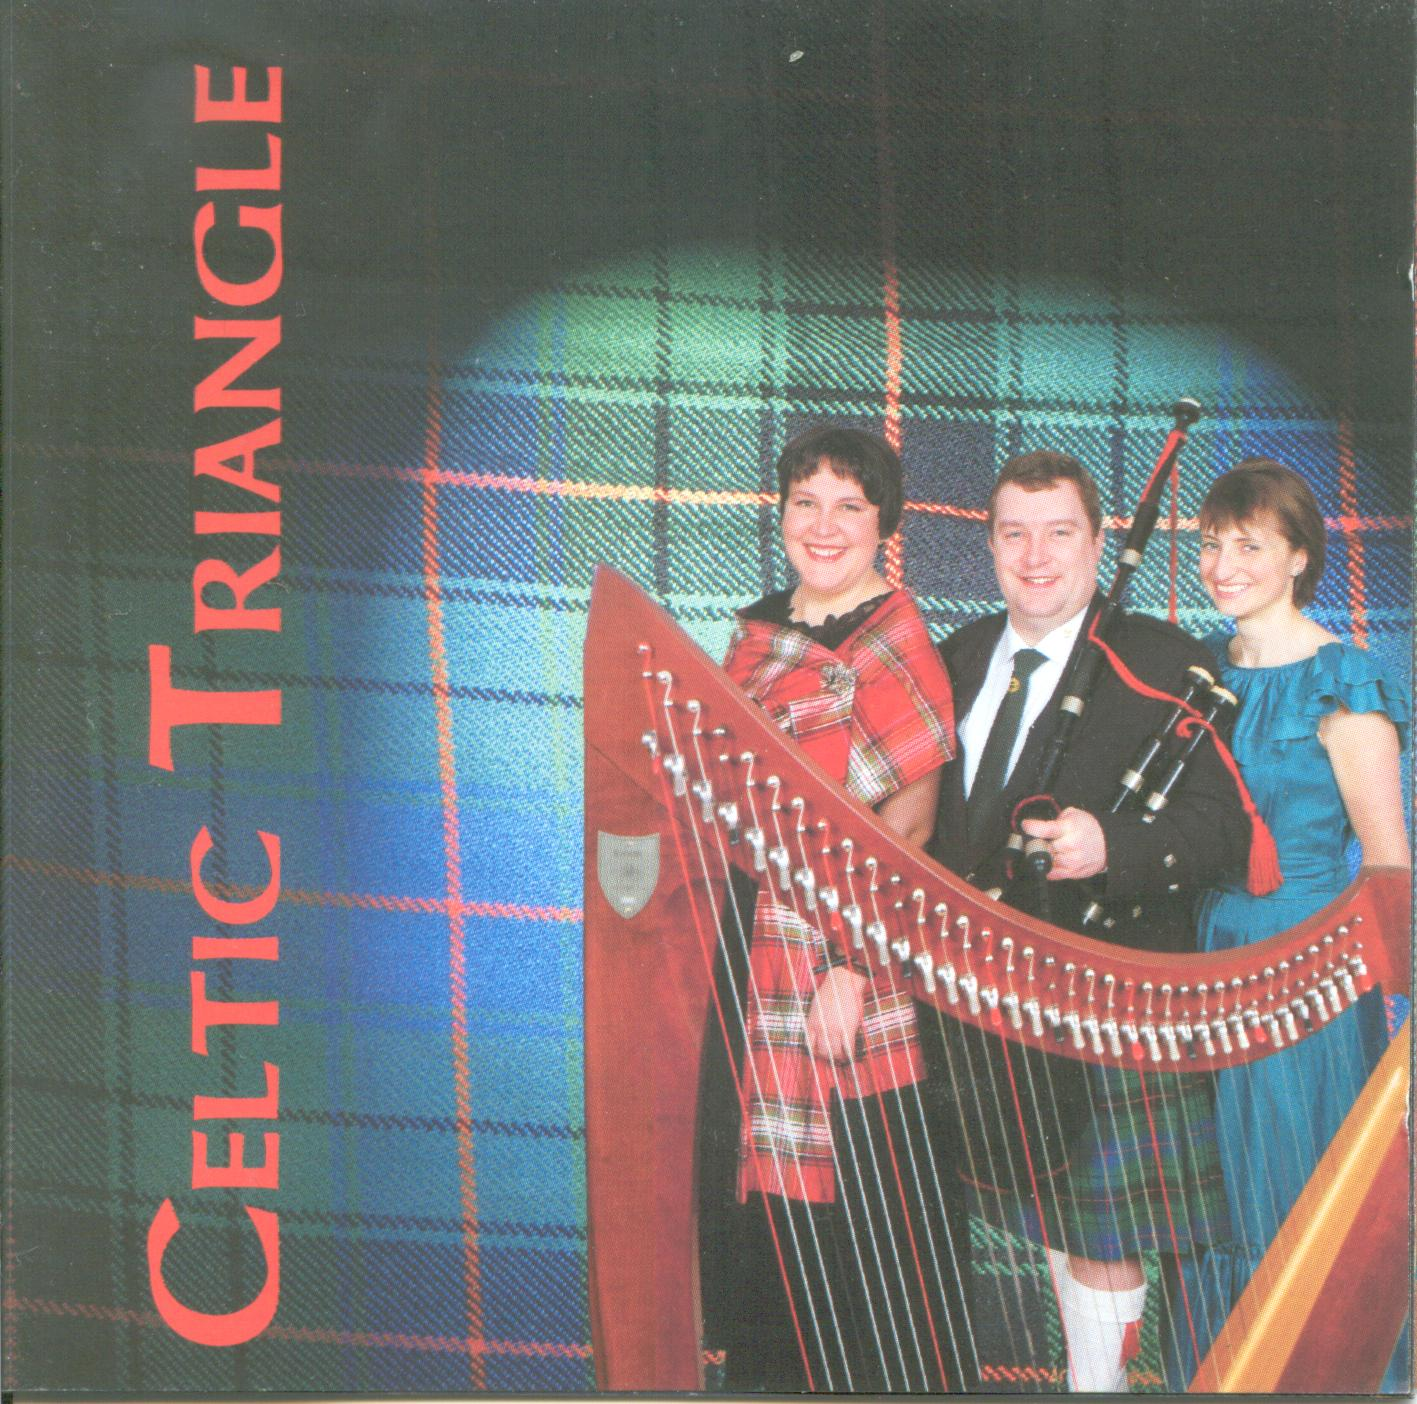 Celtic Triangle CD cover image